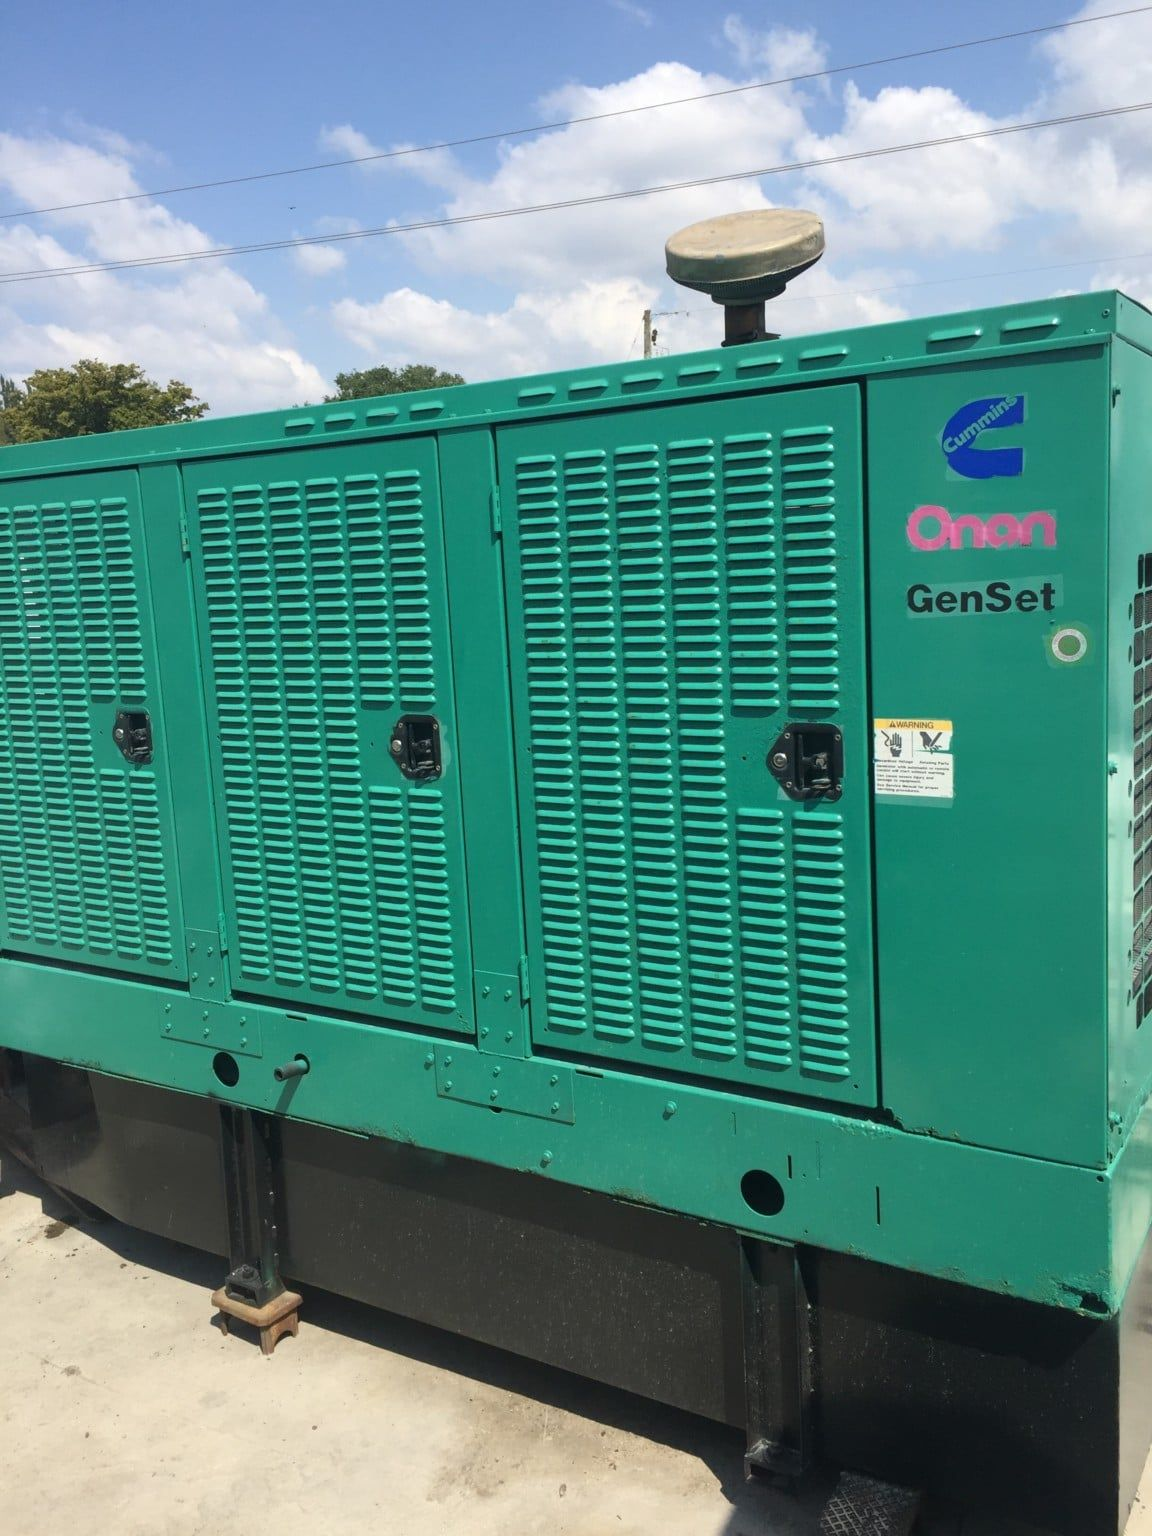 Unit 32001013 Just In Call For Additional Information Manufacturer Cummins Fuel Type Diesel Rating 100 Kw Hours With Images Cummins Onan Onan Diesel Generators